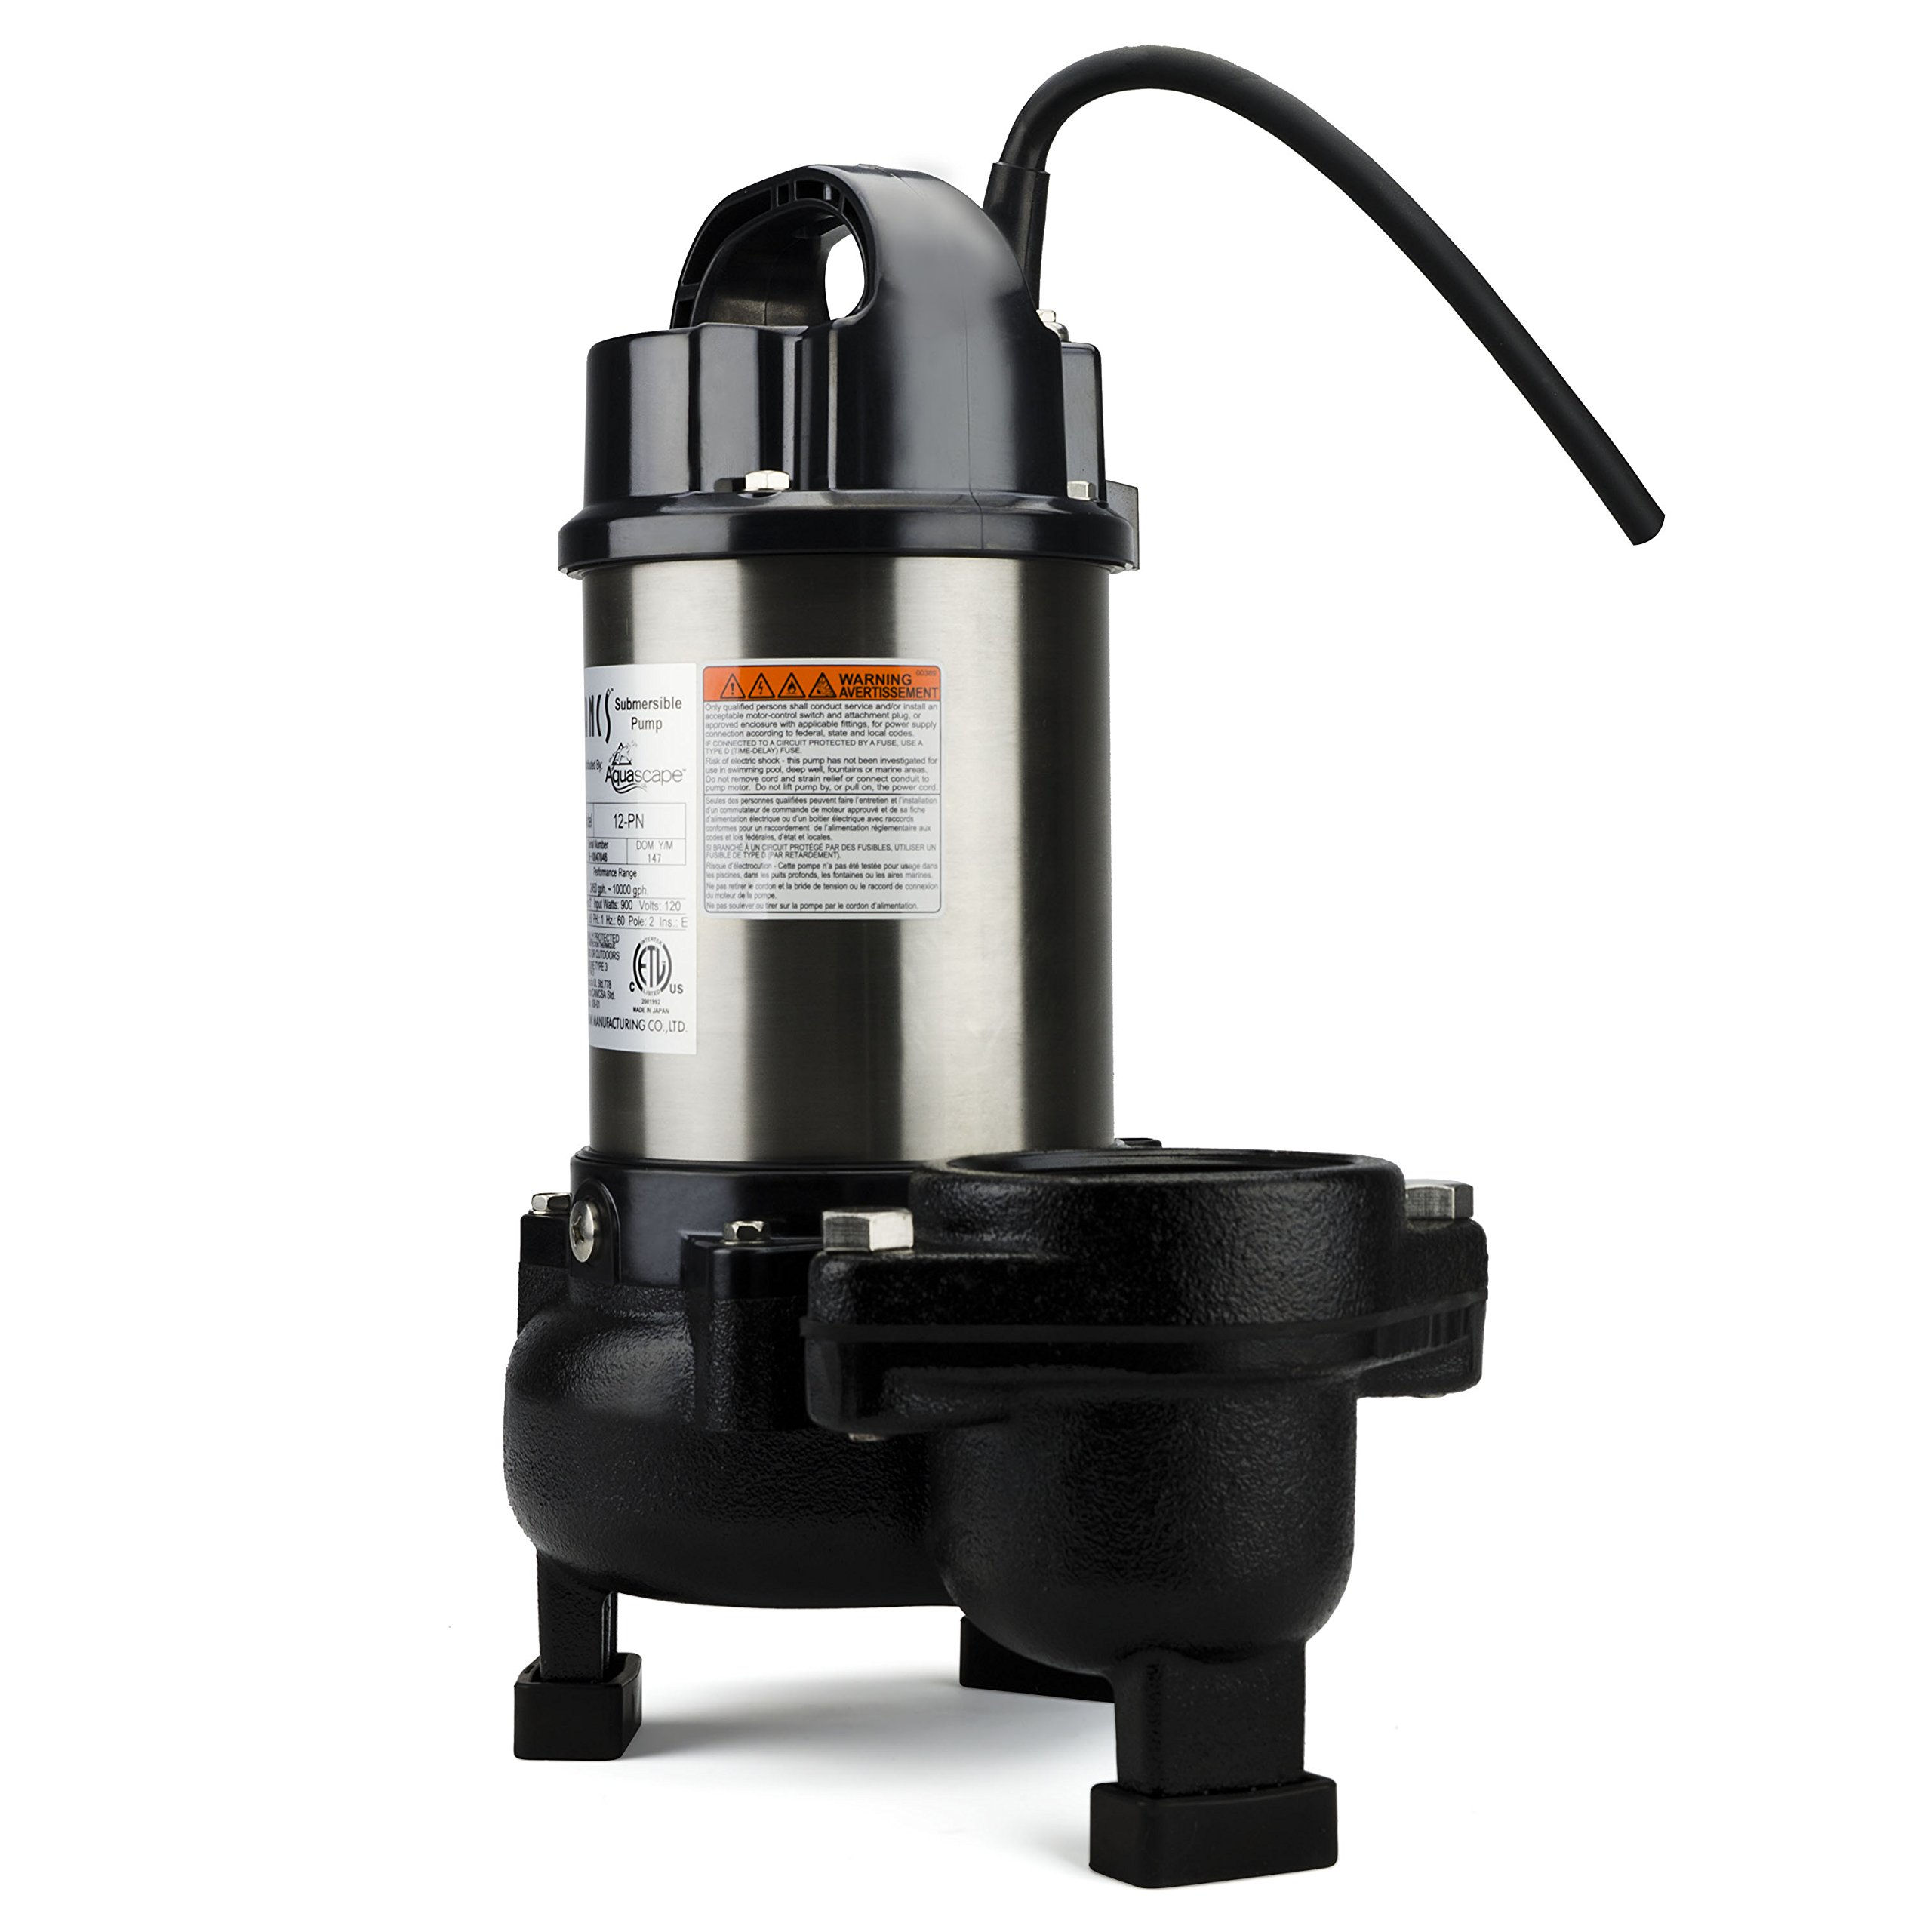 Aquascape 30391 Tsurumi 12PN Submersible Pump for Ponds, Skimmer Filters, and Pondless Waterfalls, 10,000 GPH by Tsurumi (Image #2)